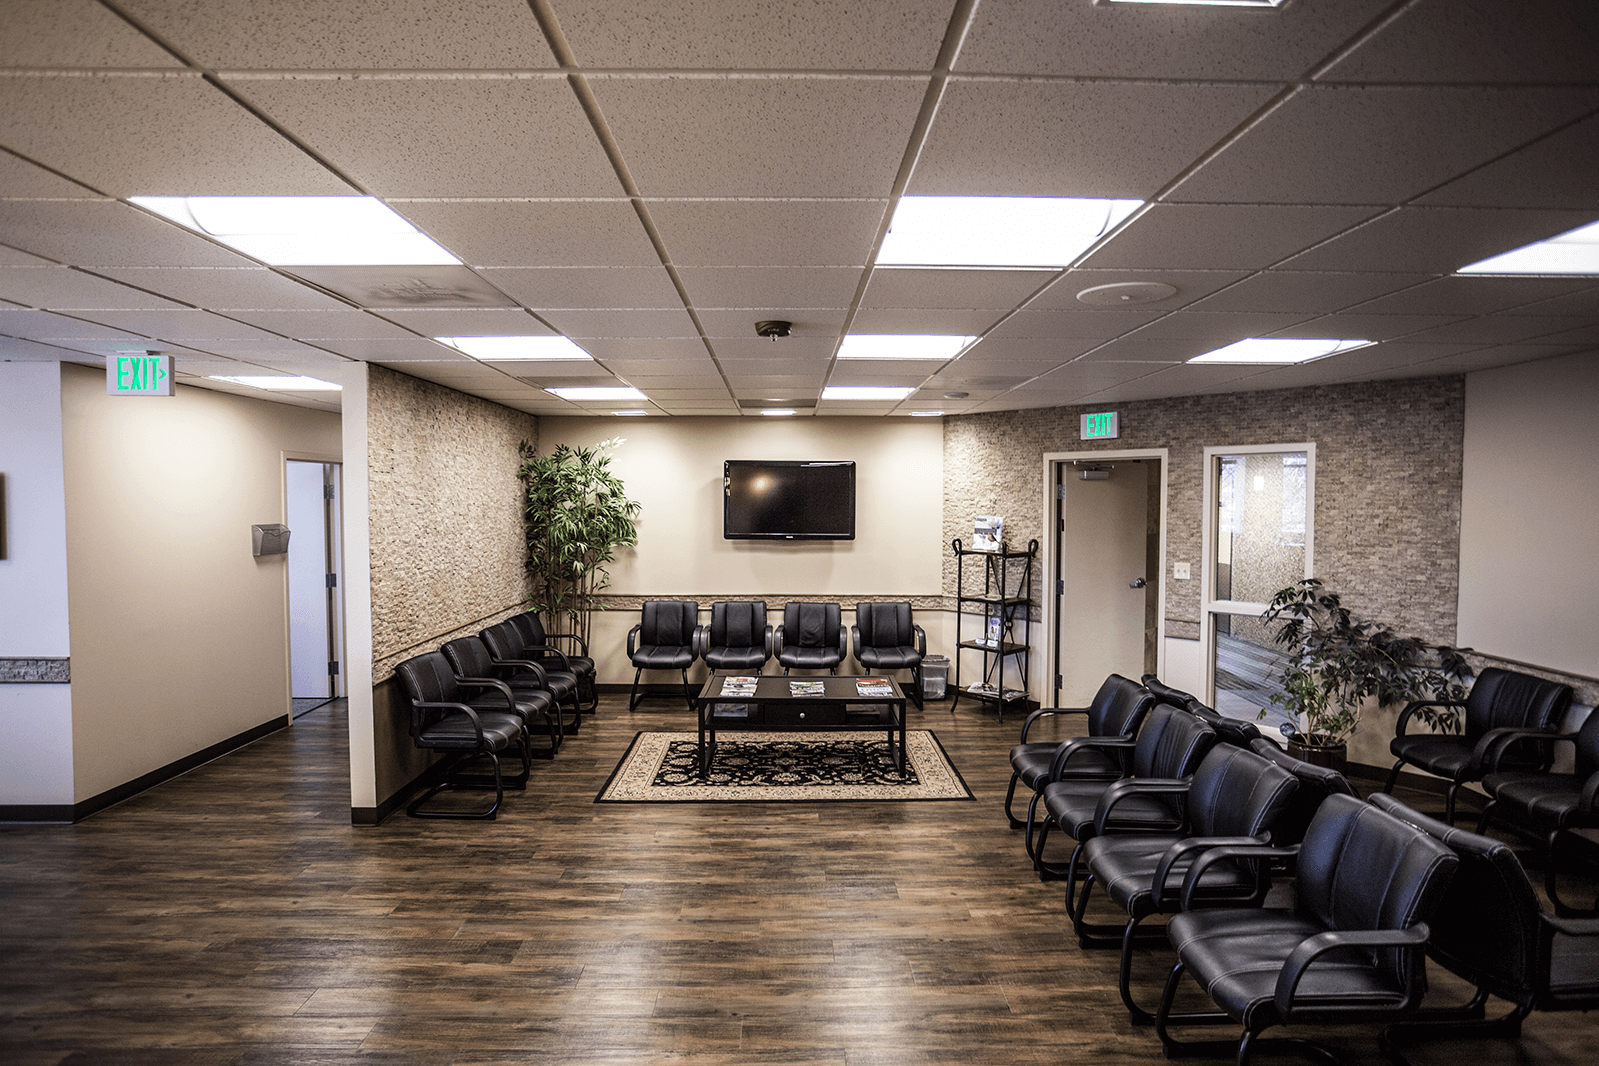 Colorado Primary Health and Wellness Waiting Room